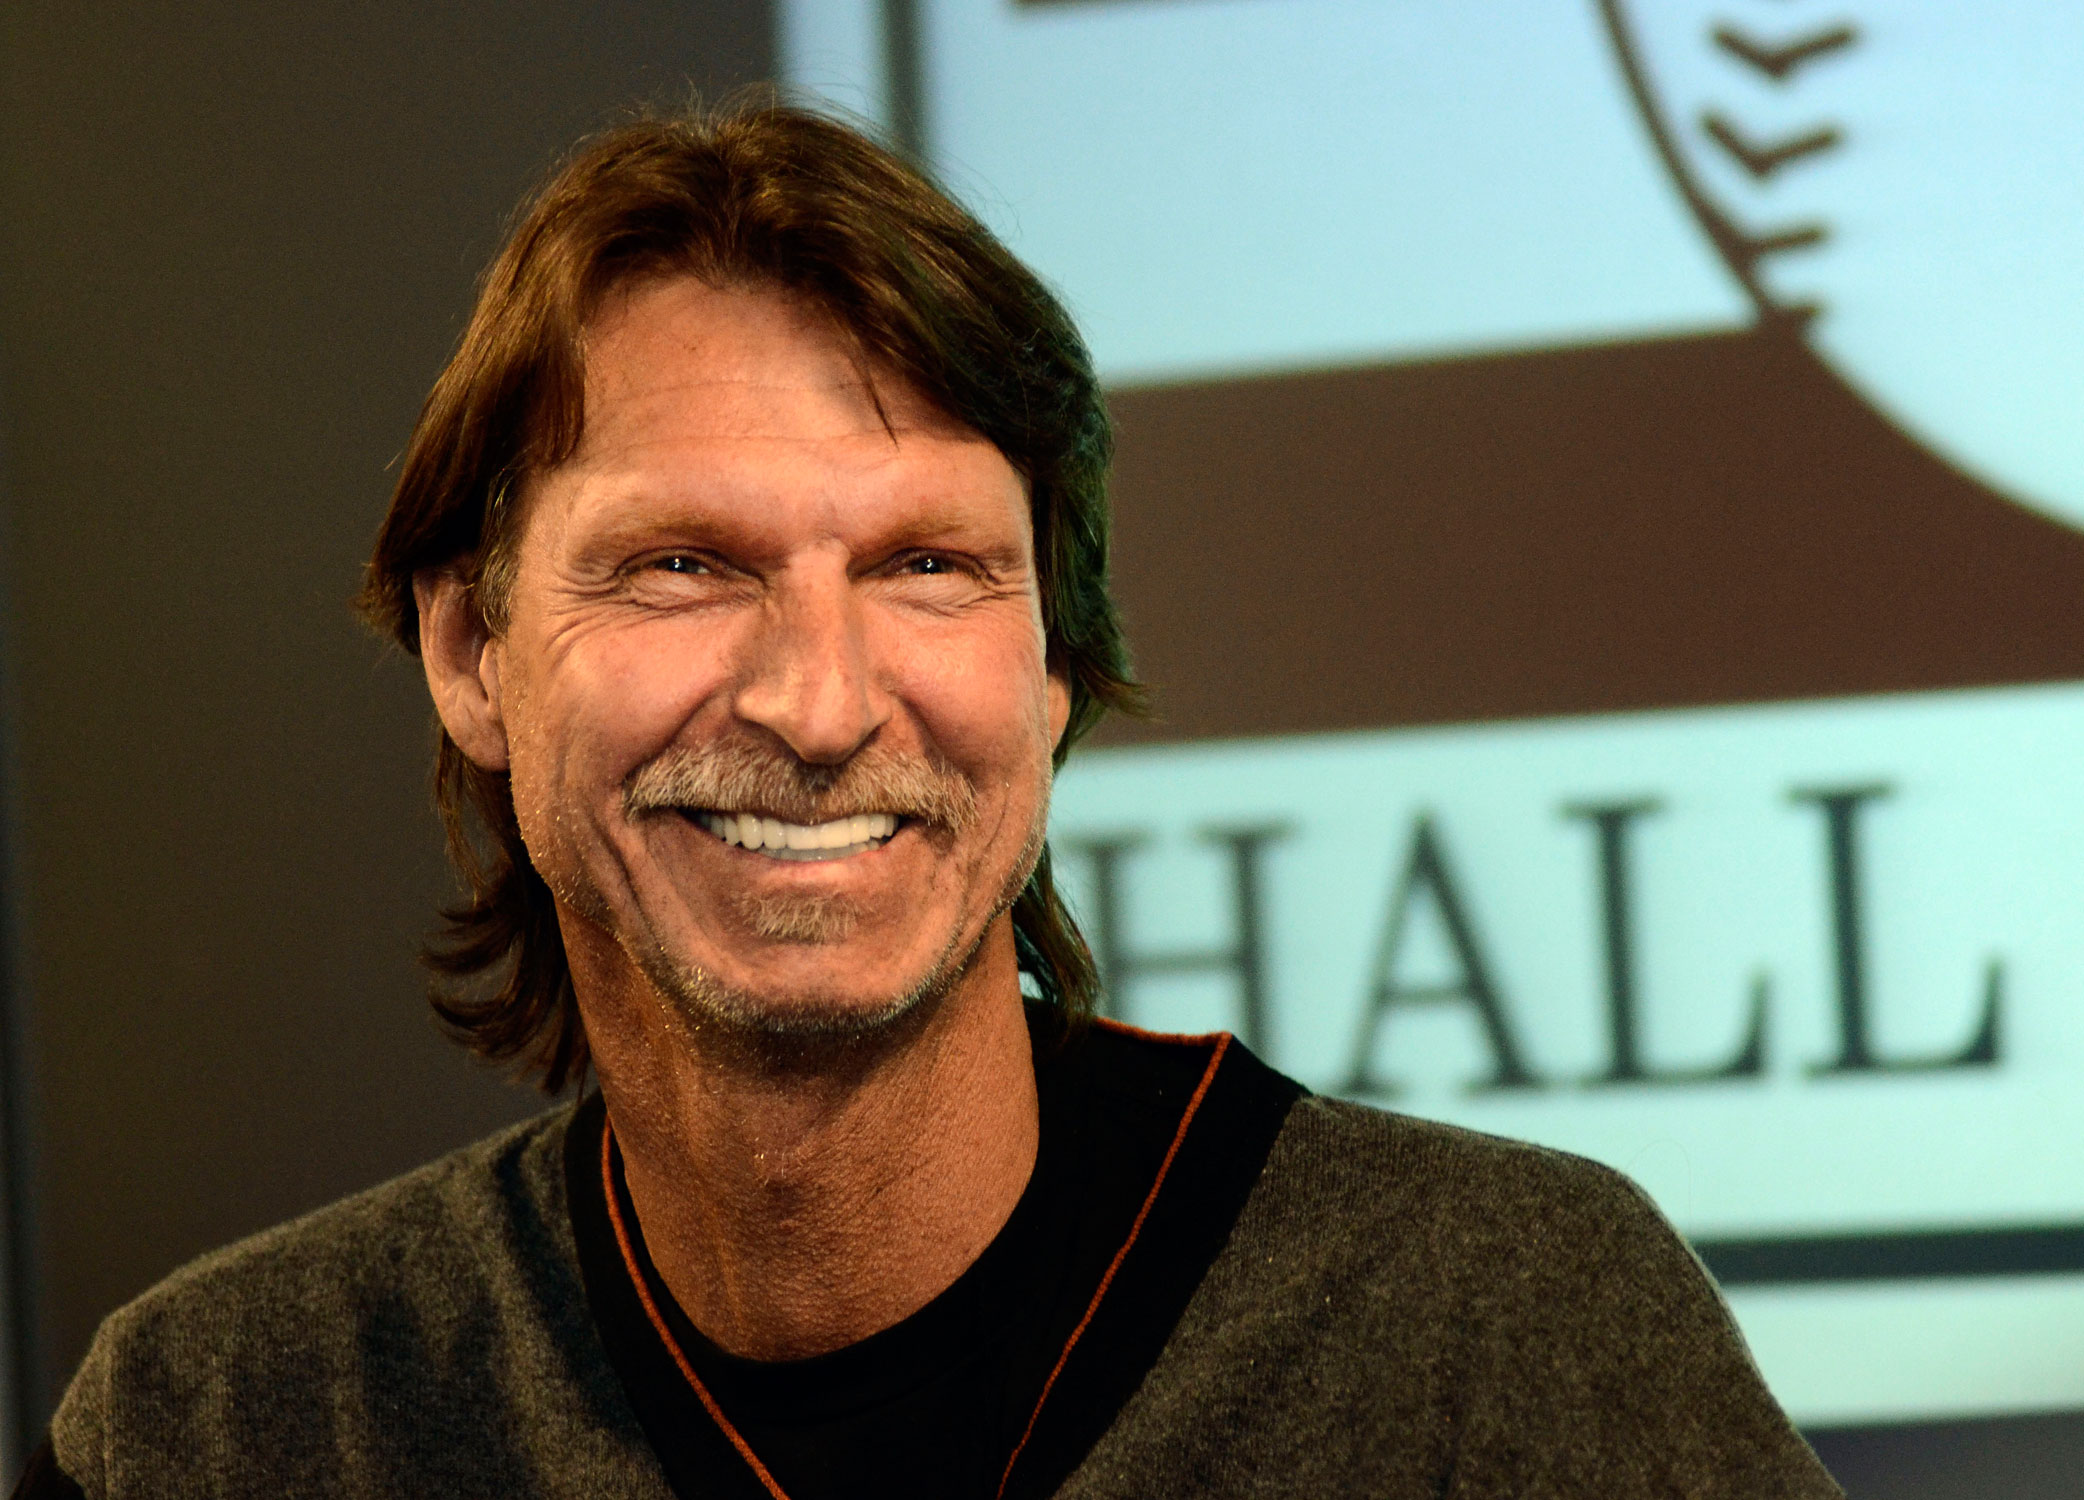 Hall of Famer Randy Johnson finds life after sports through the lens